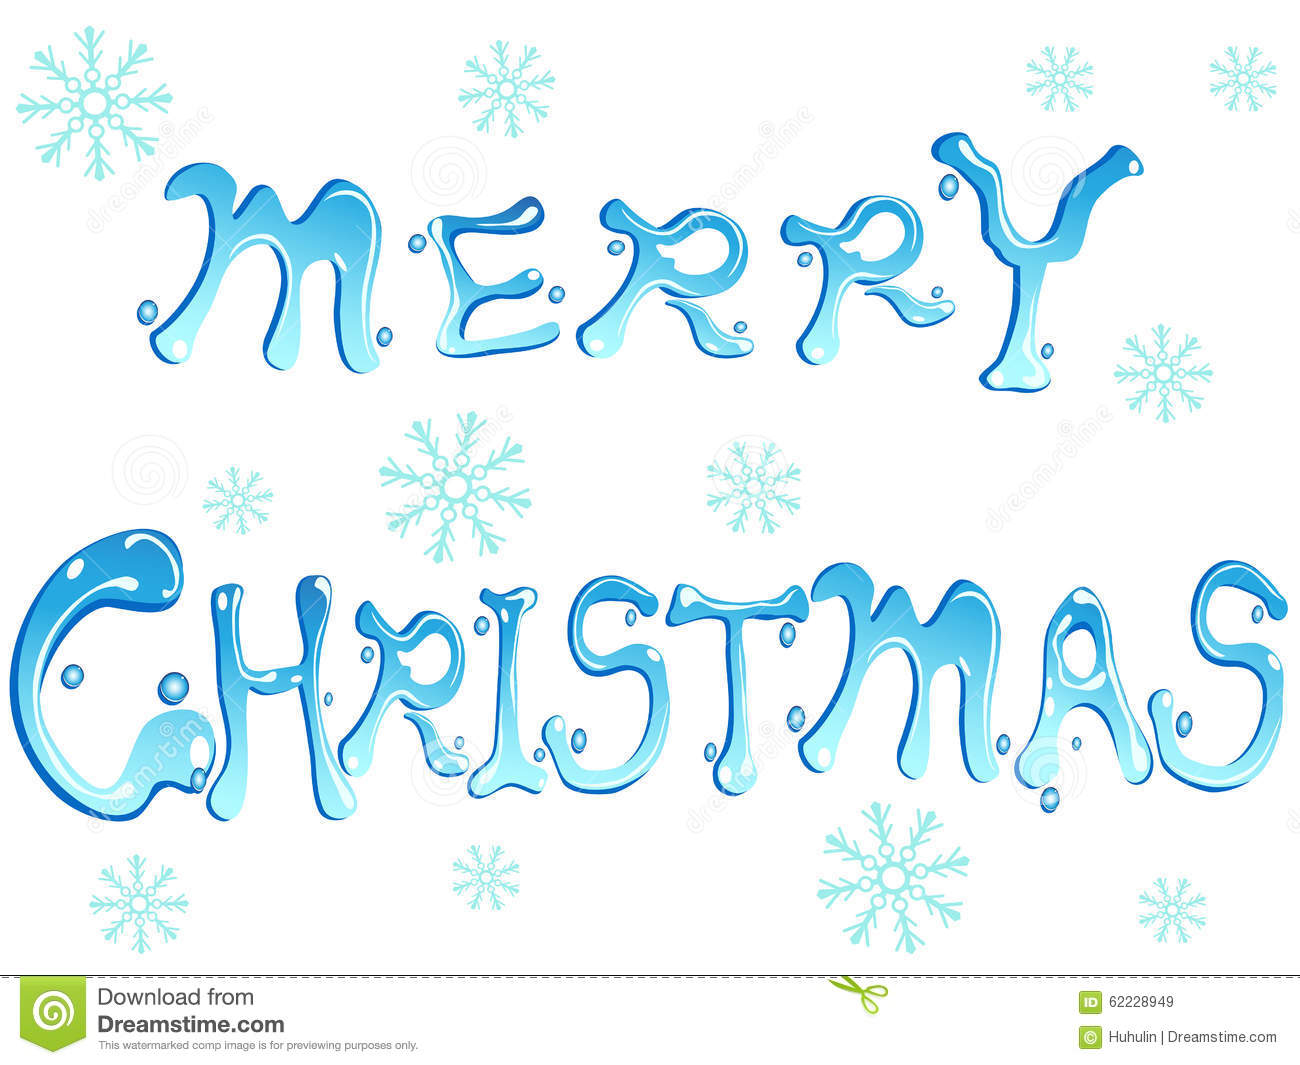 Merry Christmas Words Stock Vector. Illustration Of